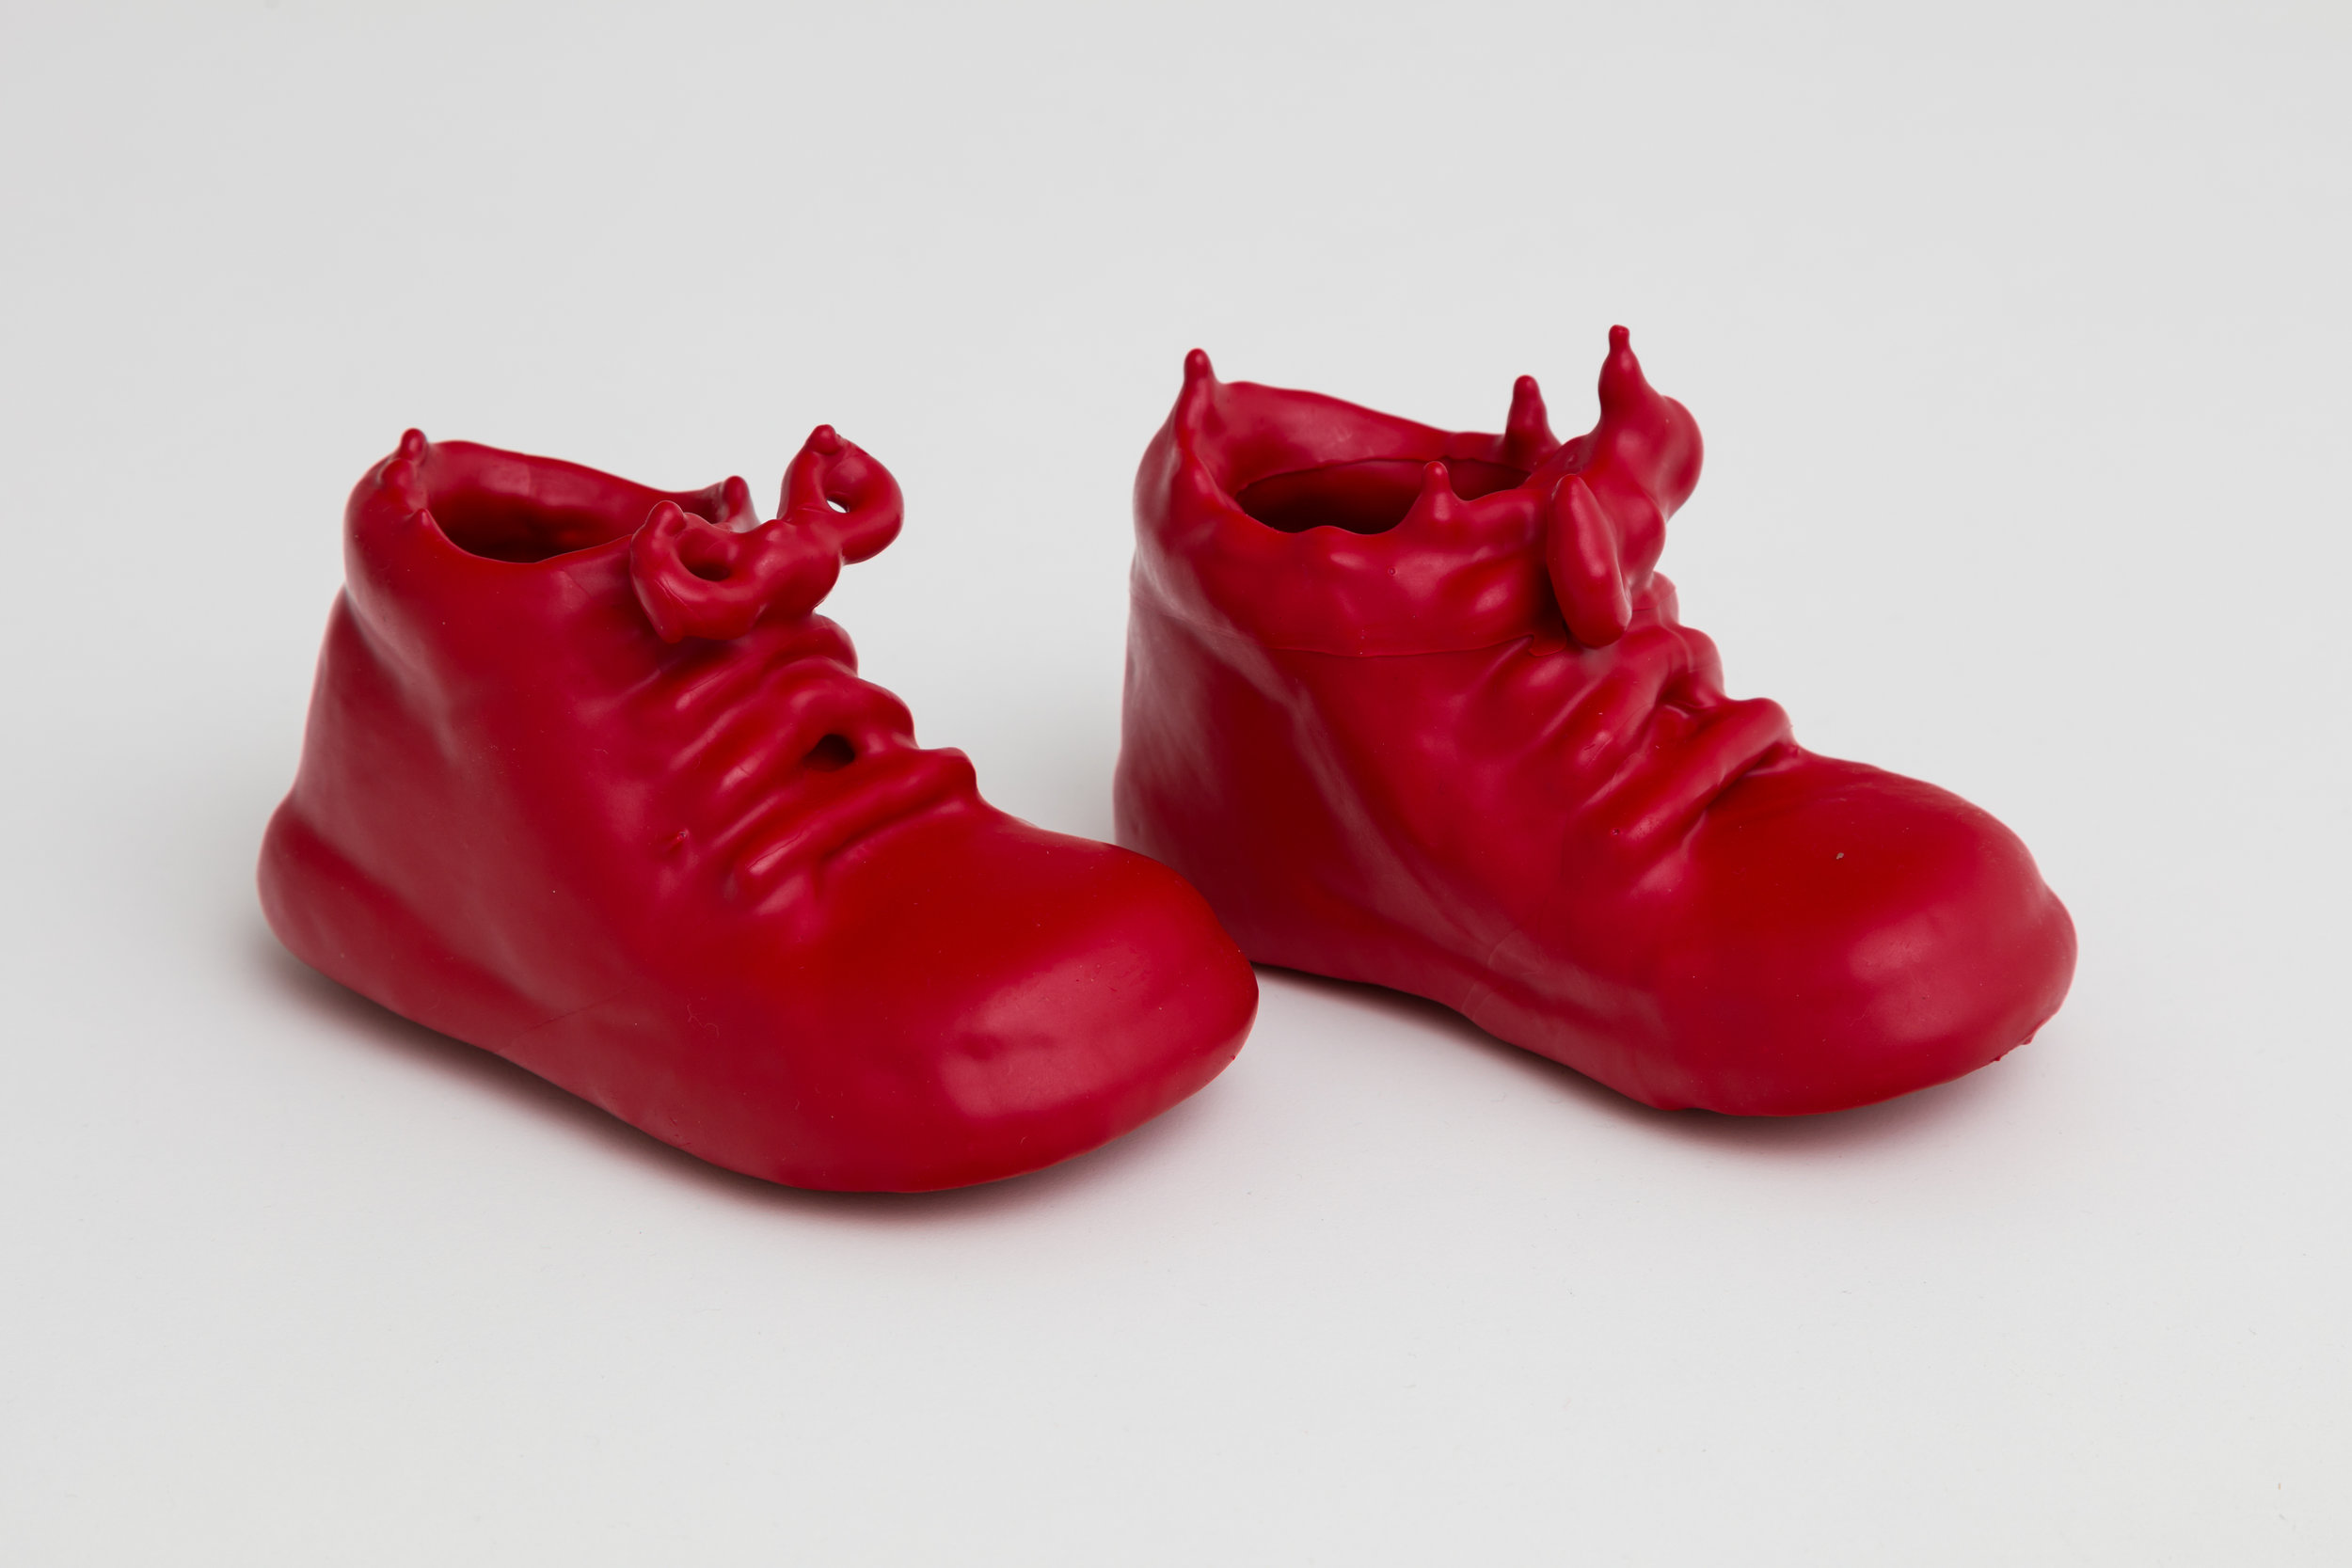 """""""Baby Boots""""  Lipstick and resin  5 x 2 x 3 in"""